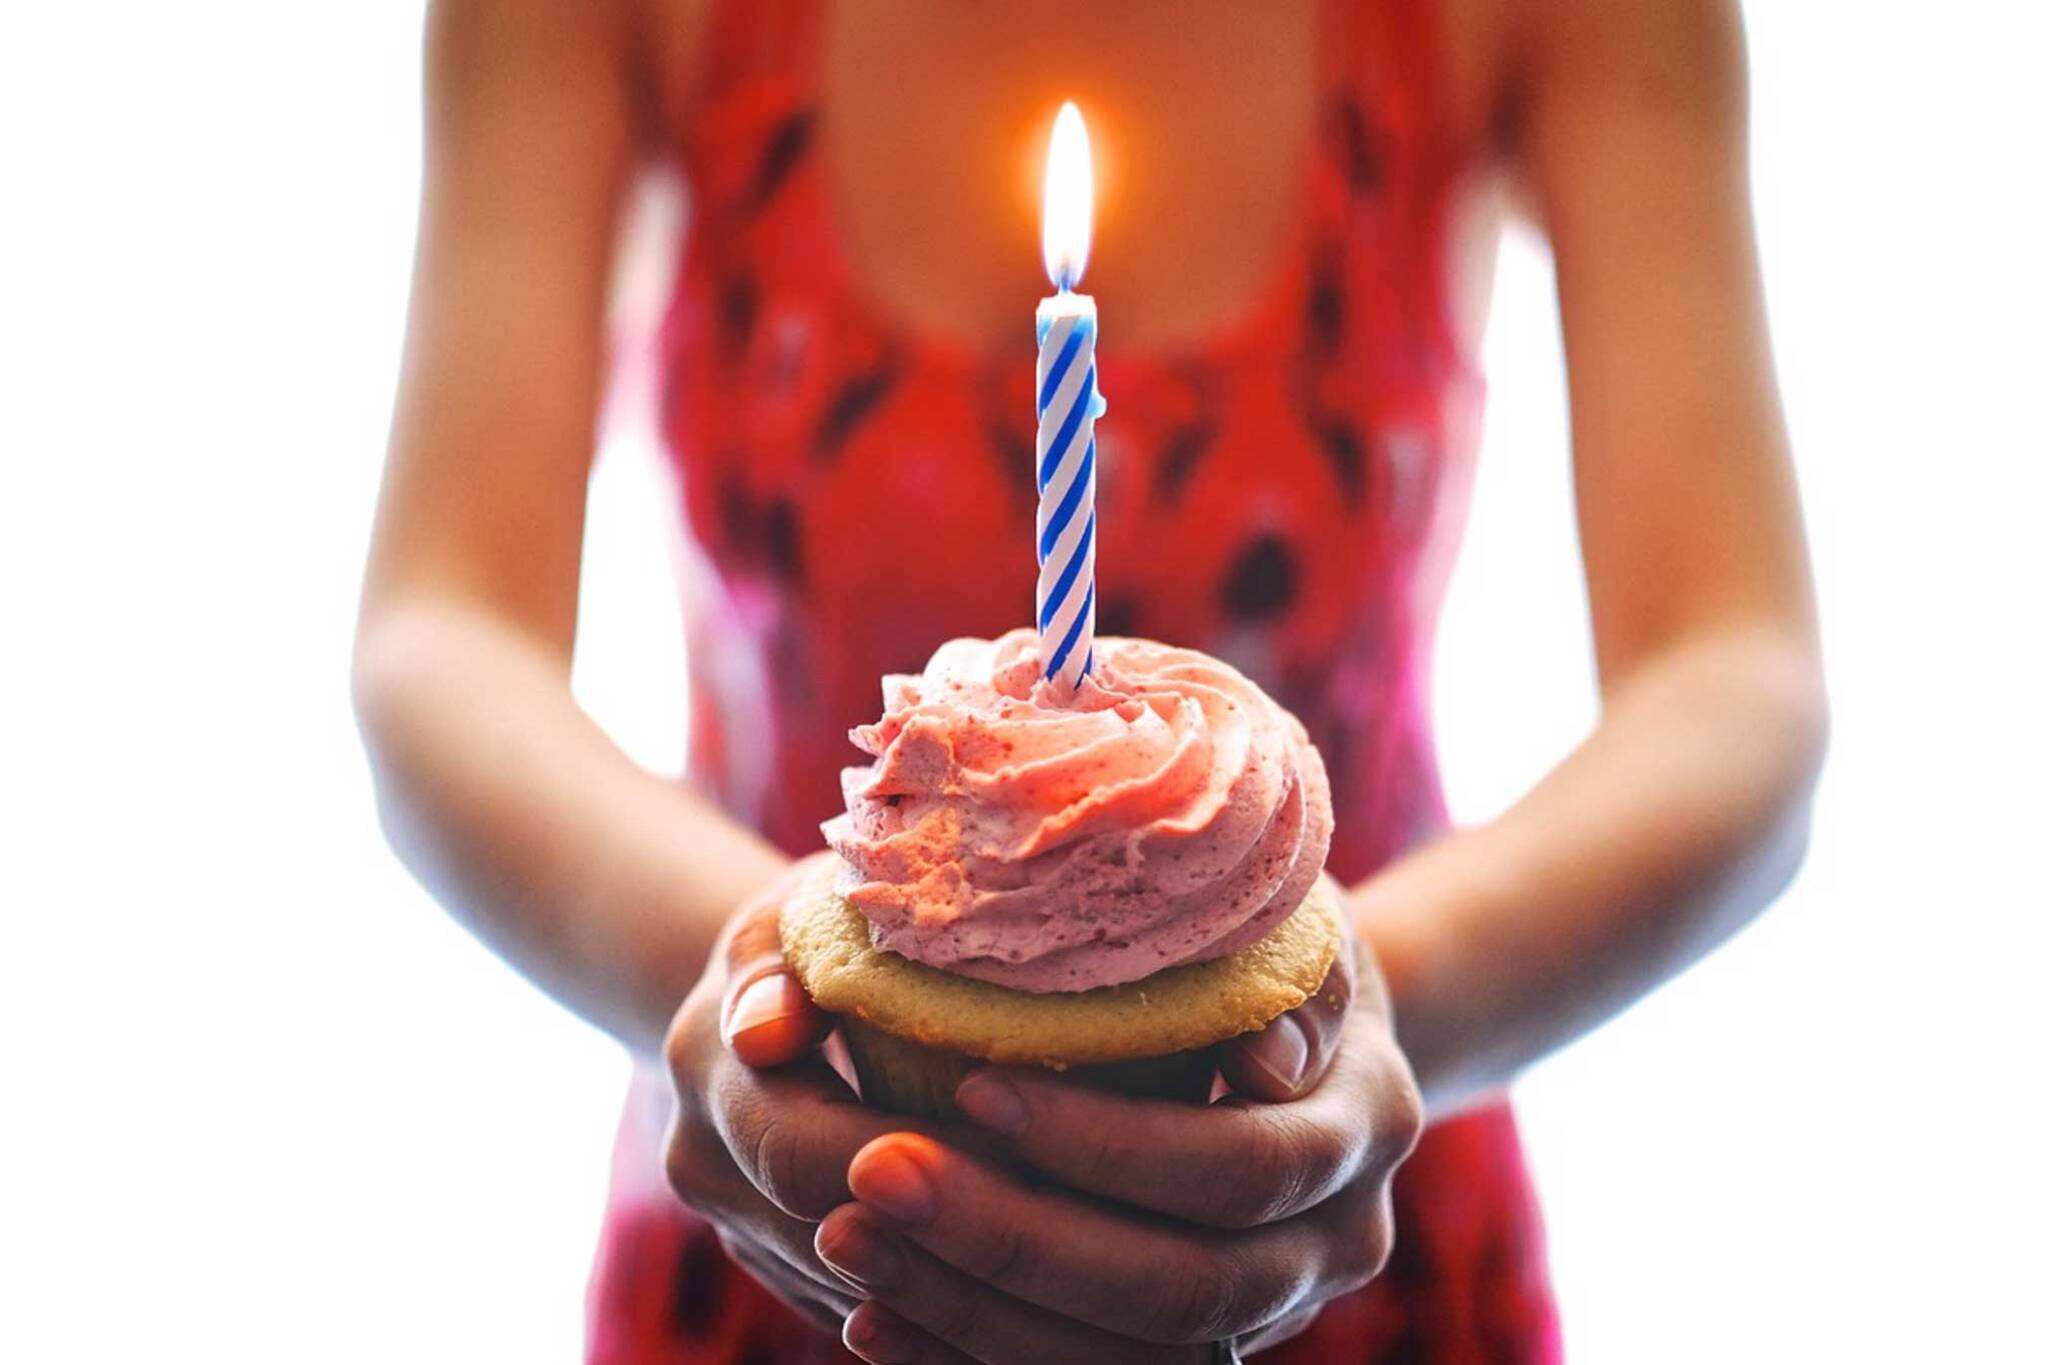 Quarantine Birthday Ideas For Adults In Toronto